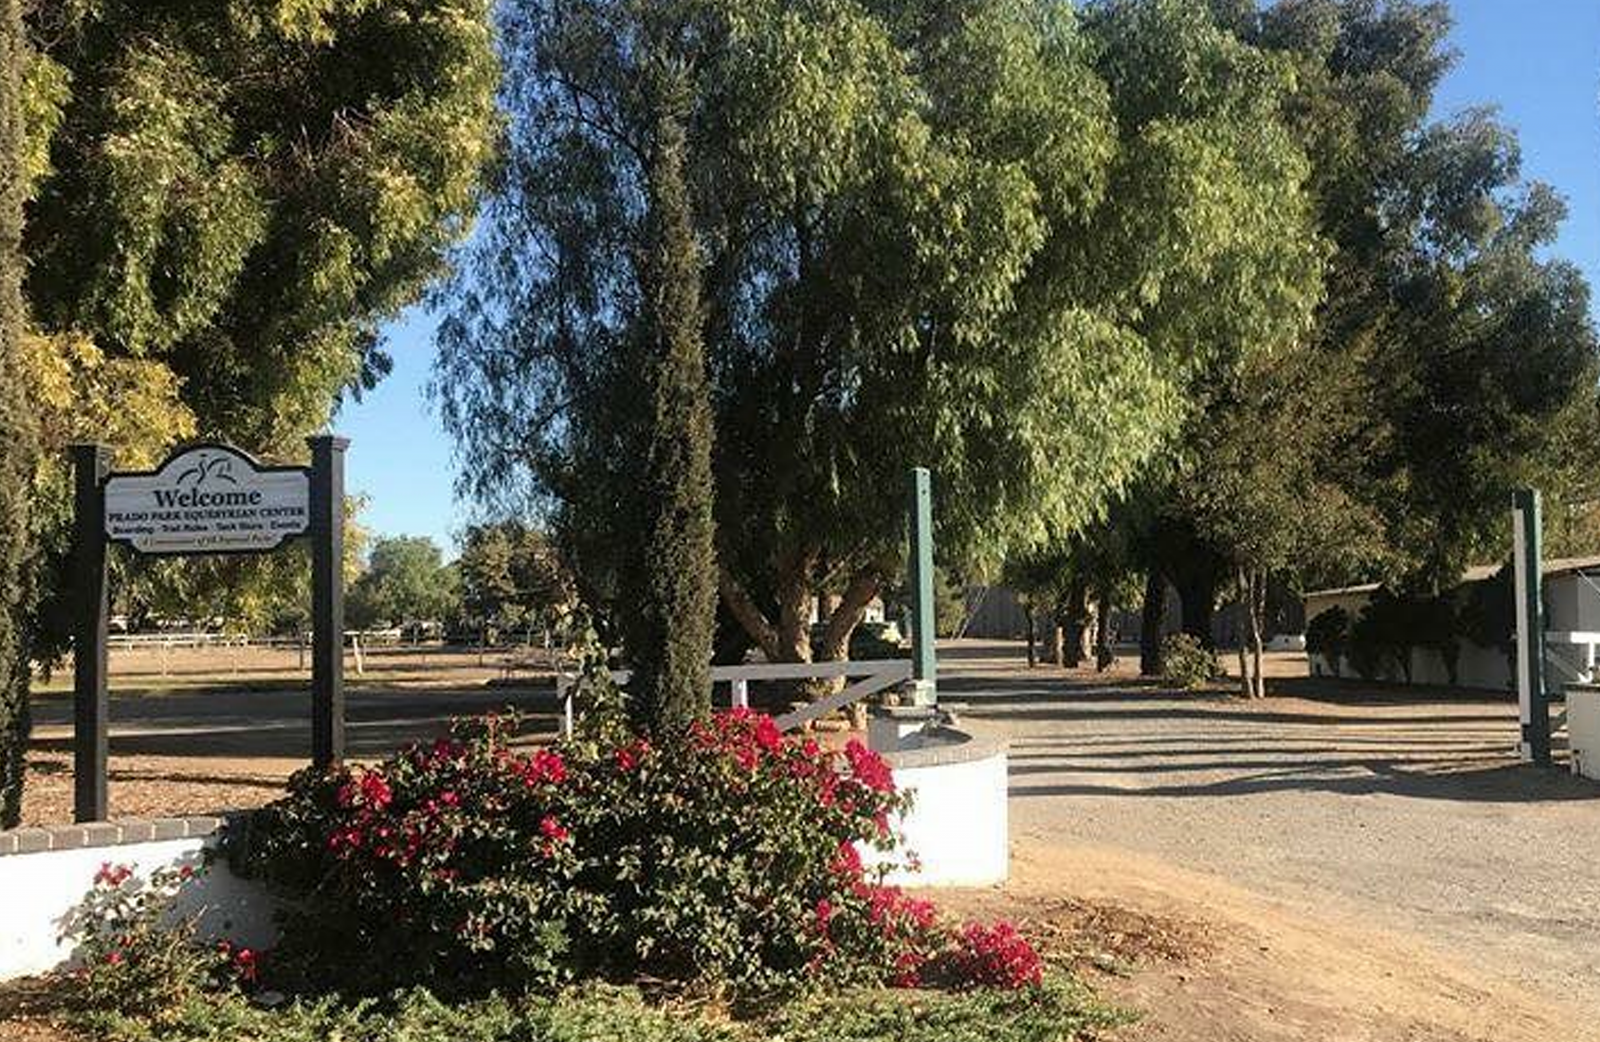 Outside Prado Equestrian Center entrance with flowers and trees.